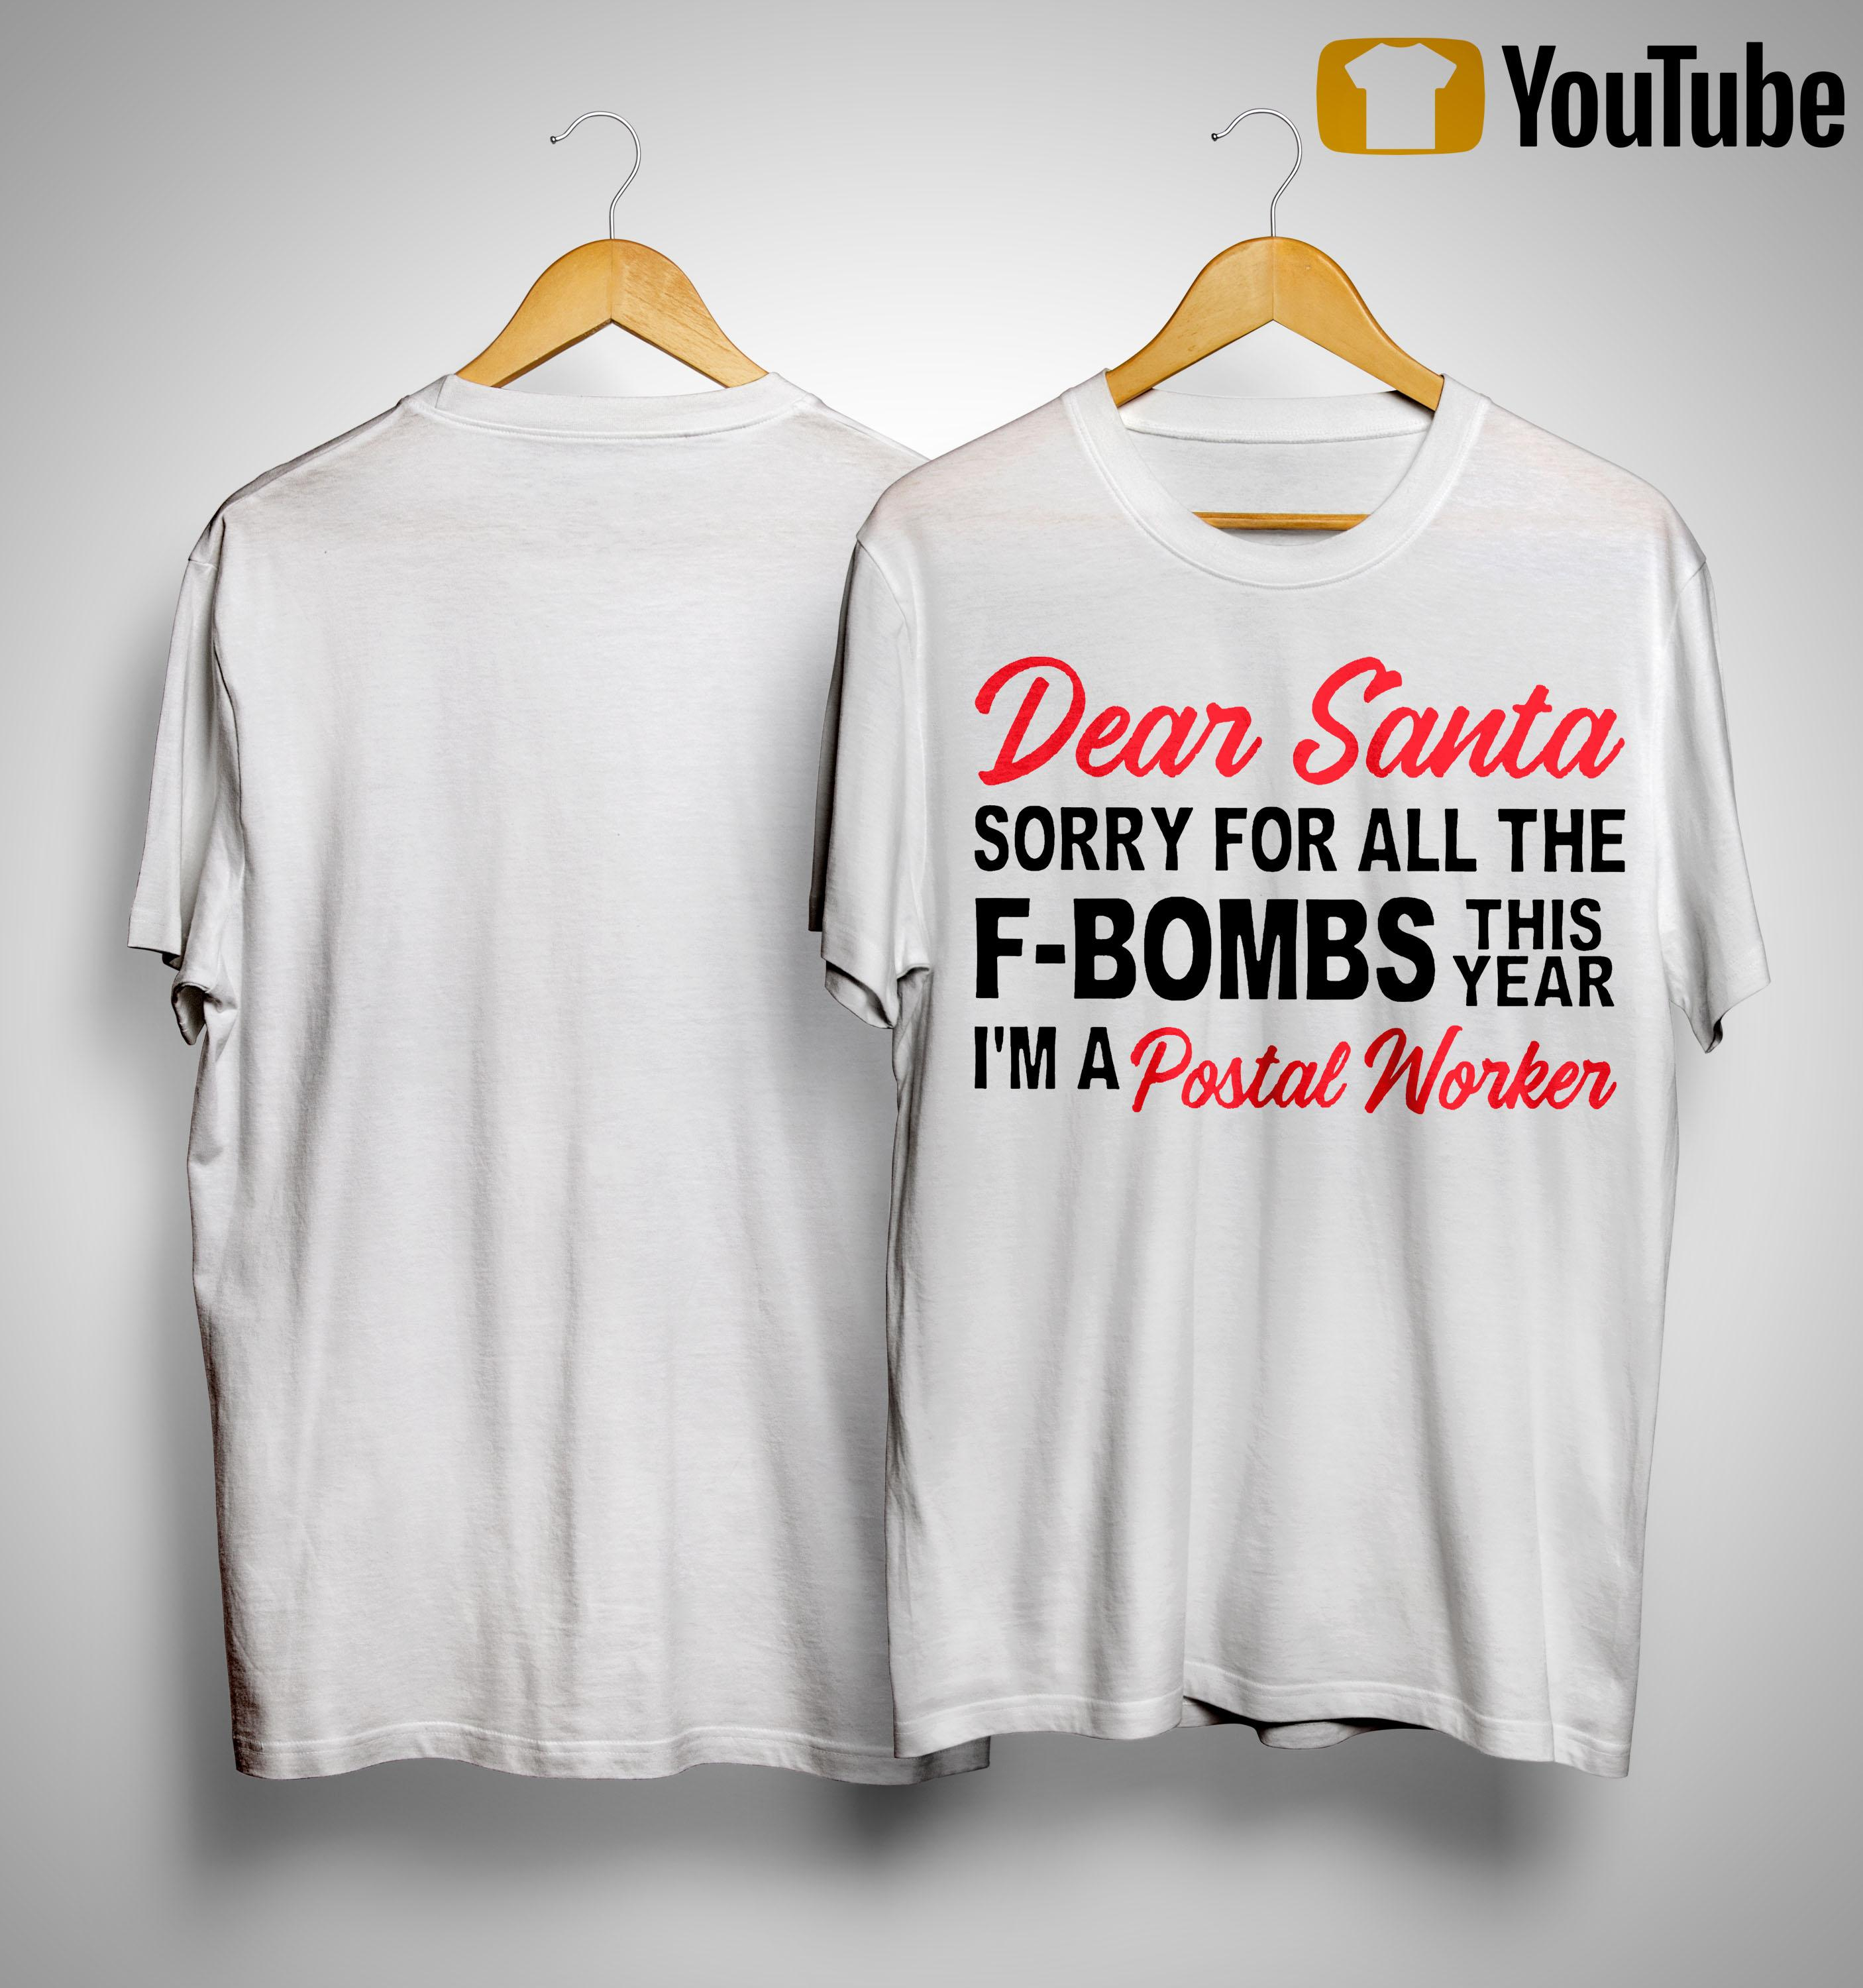 Dear Santa Sorry For All The F Bombs This Year I'm A Postal Worker Shirt